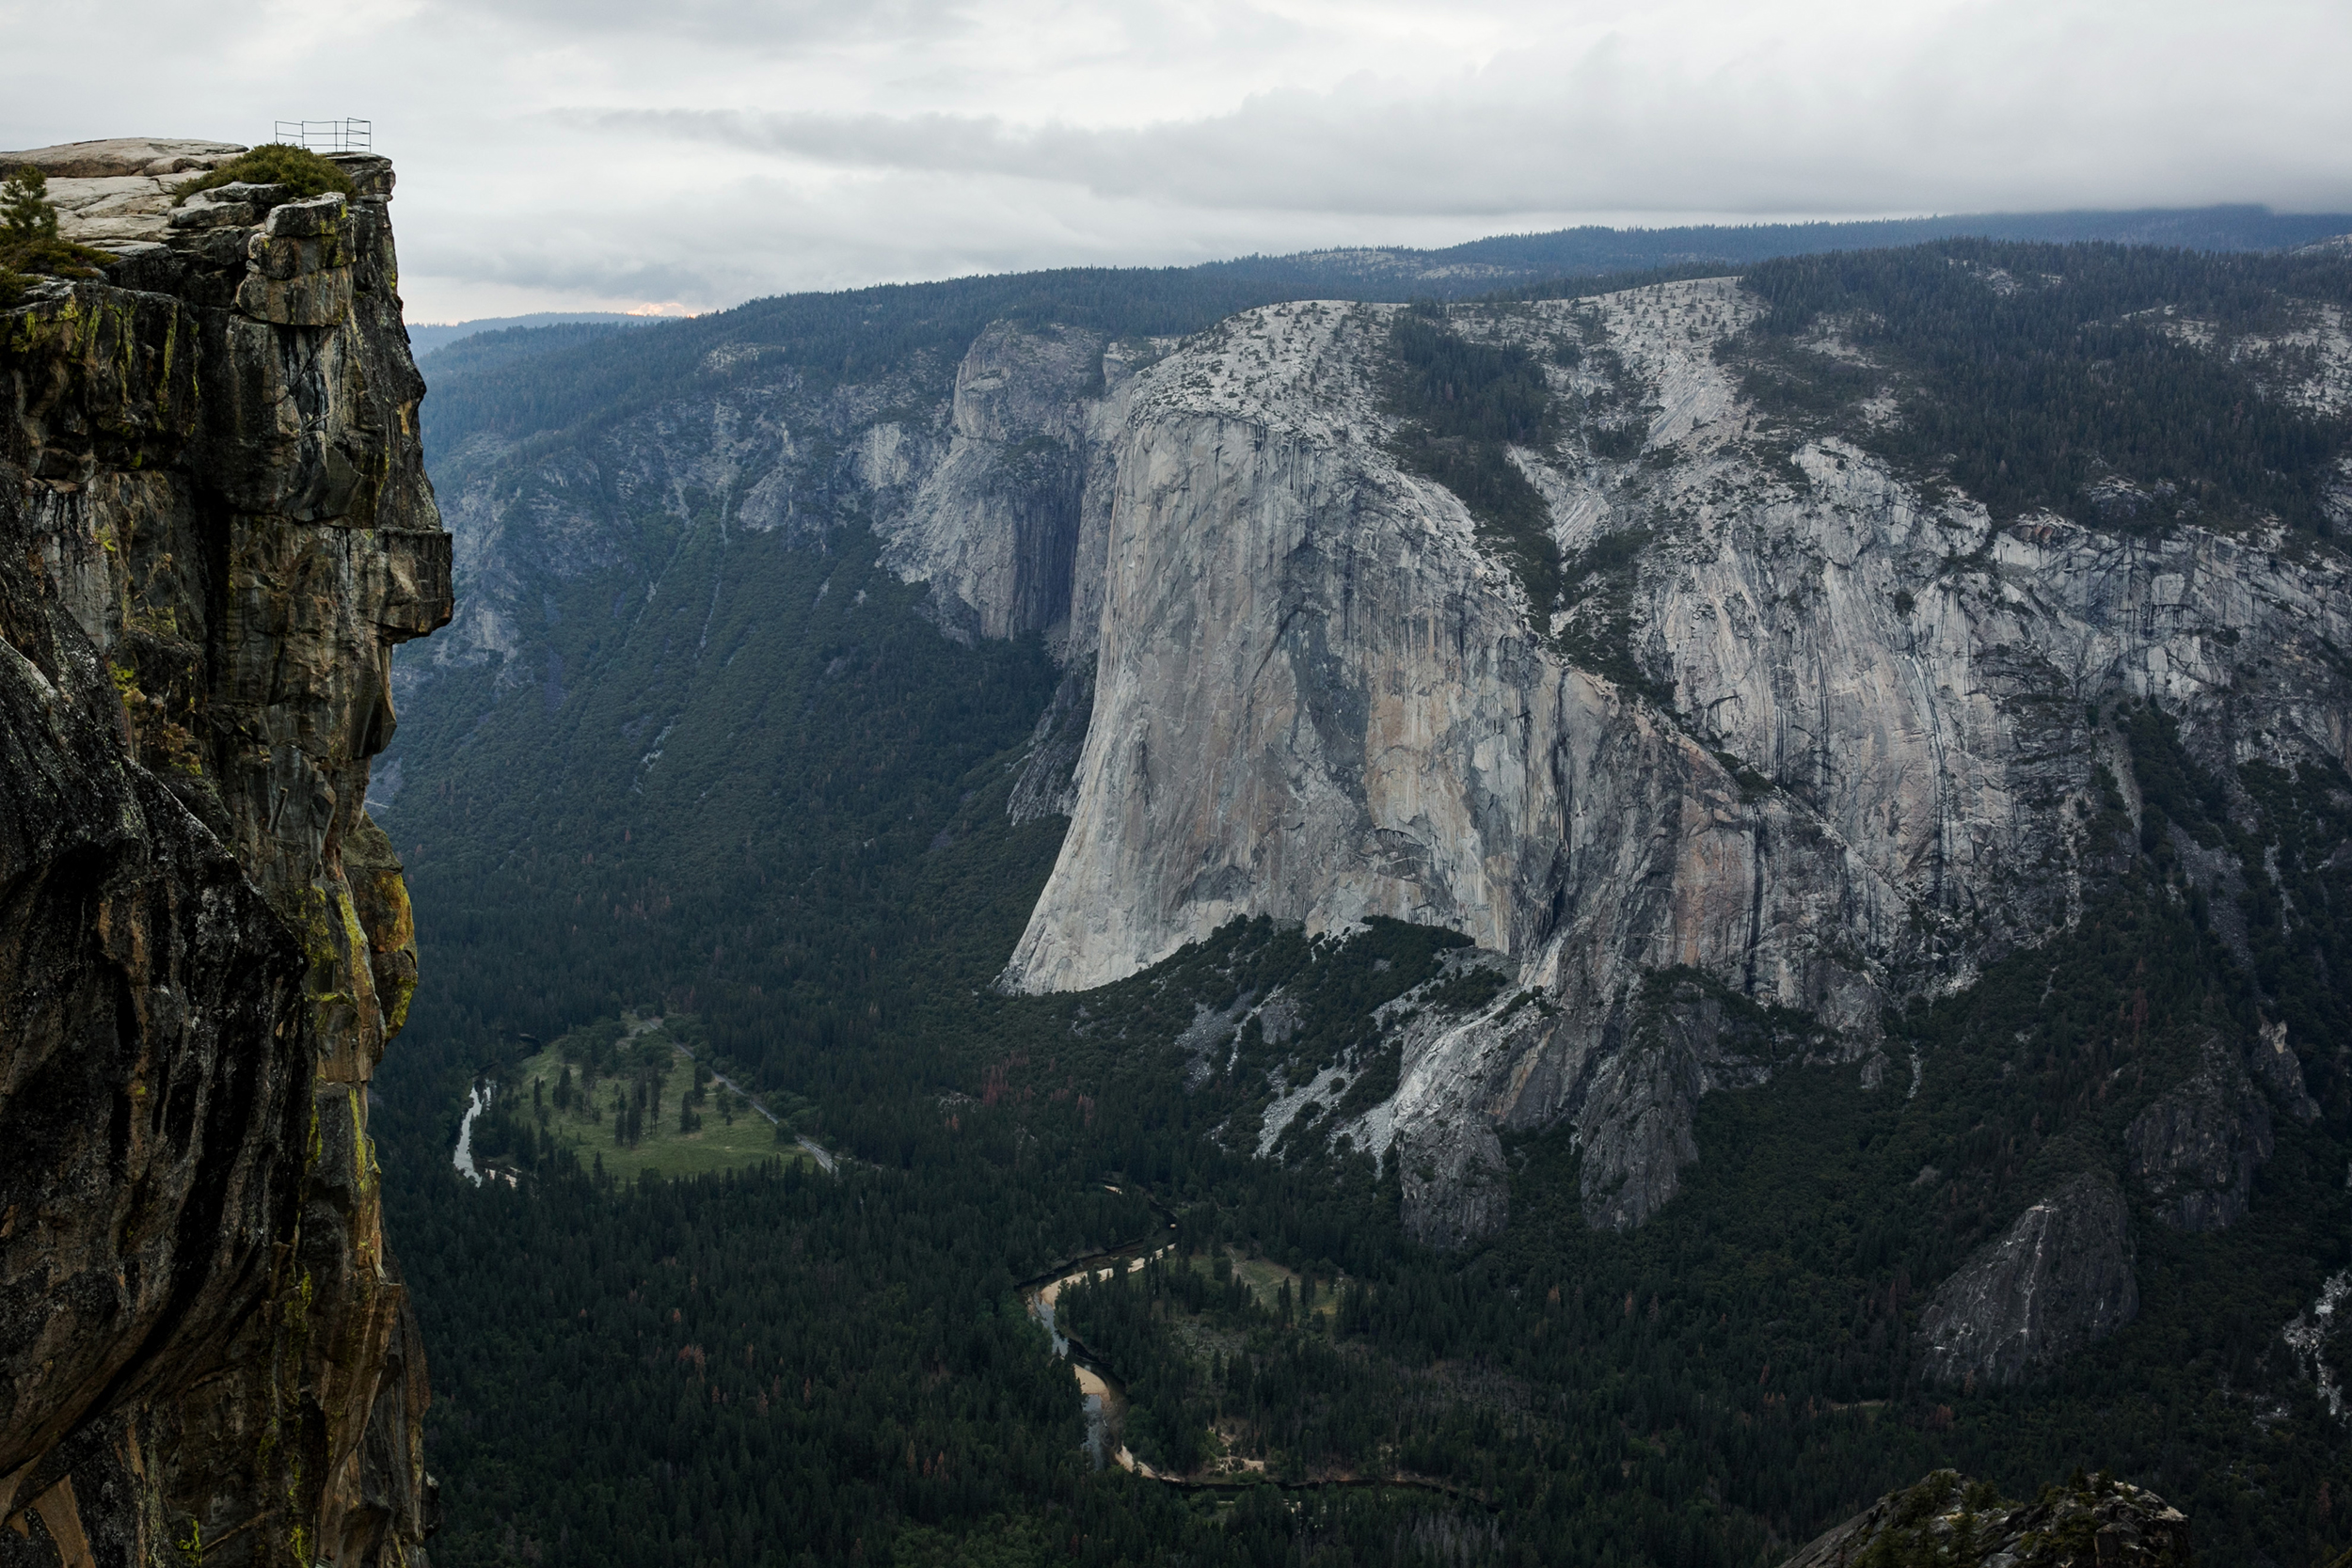 Couple who fell to their deaths in Yosemite were intoxicated, autopsy reports show